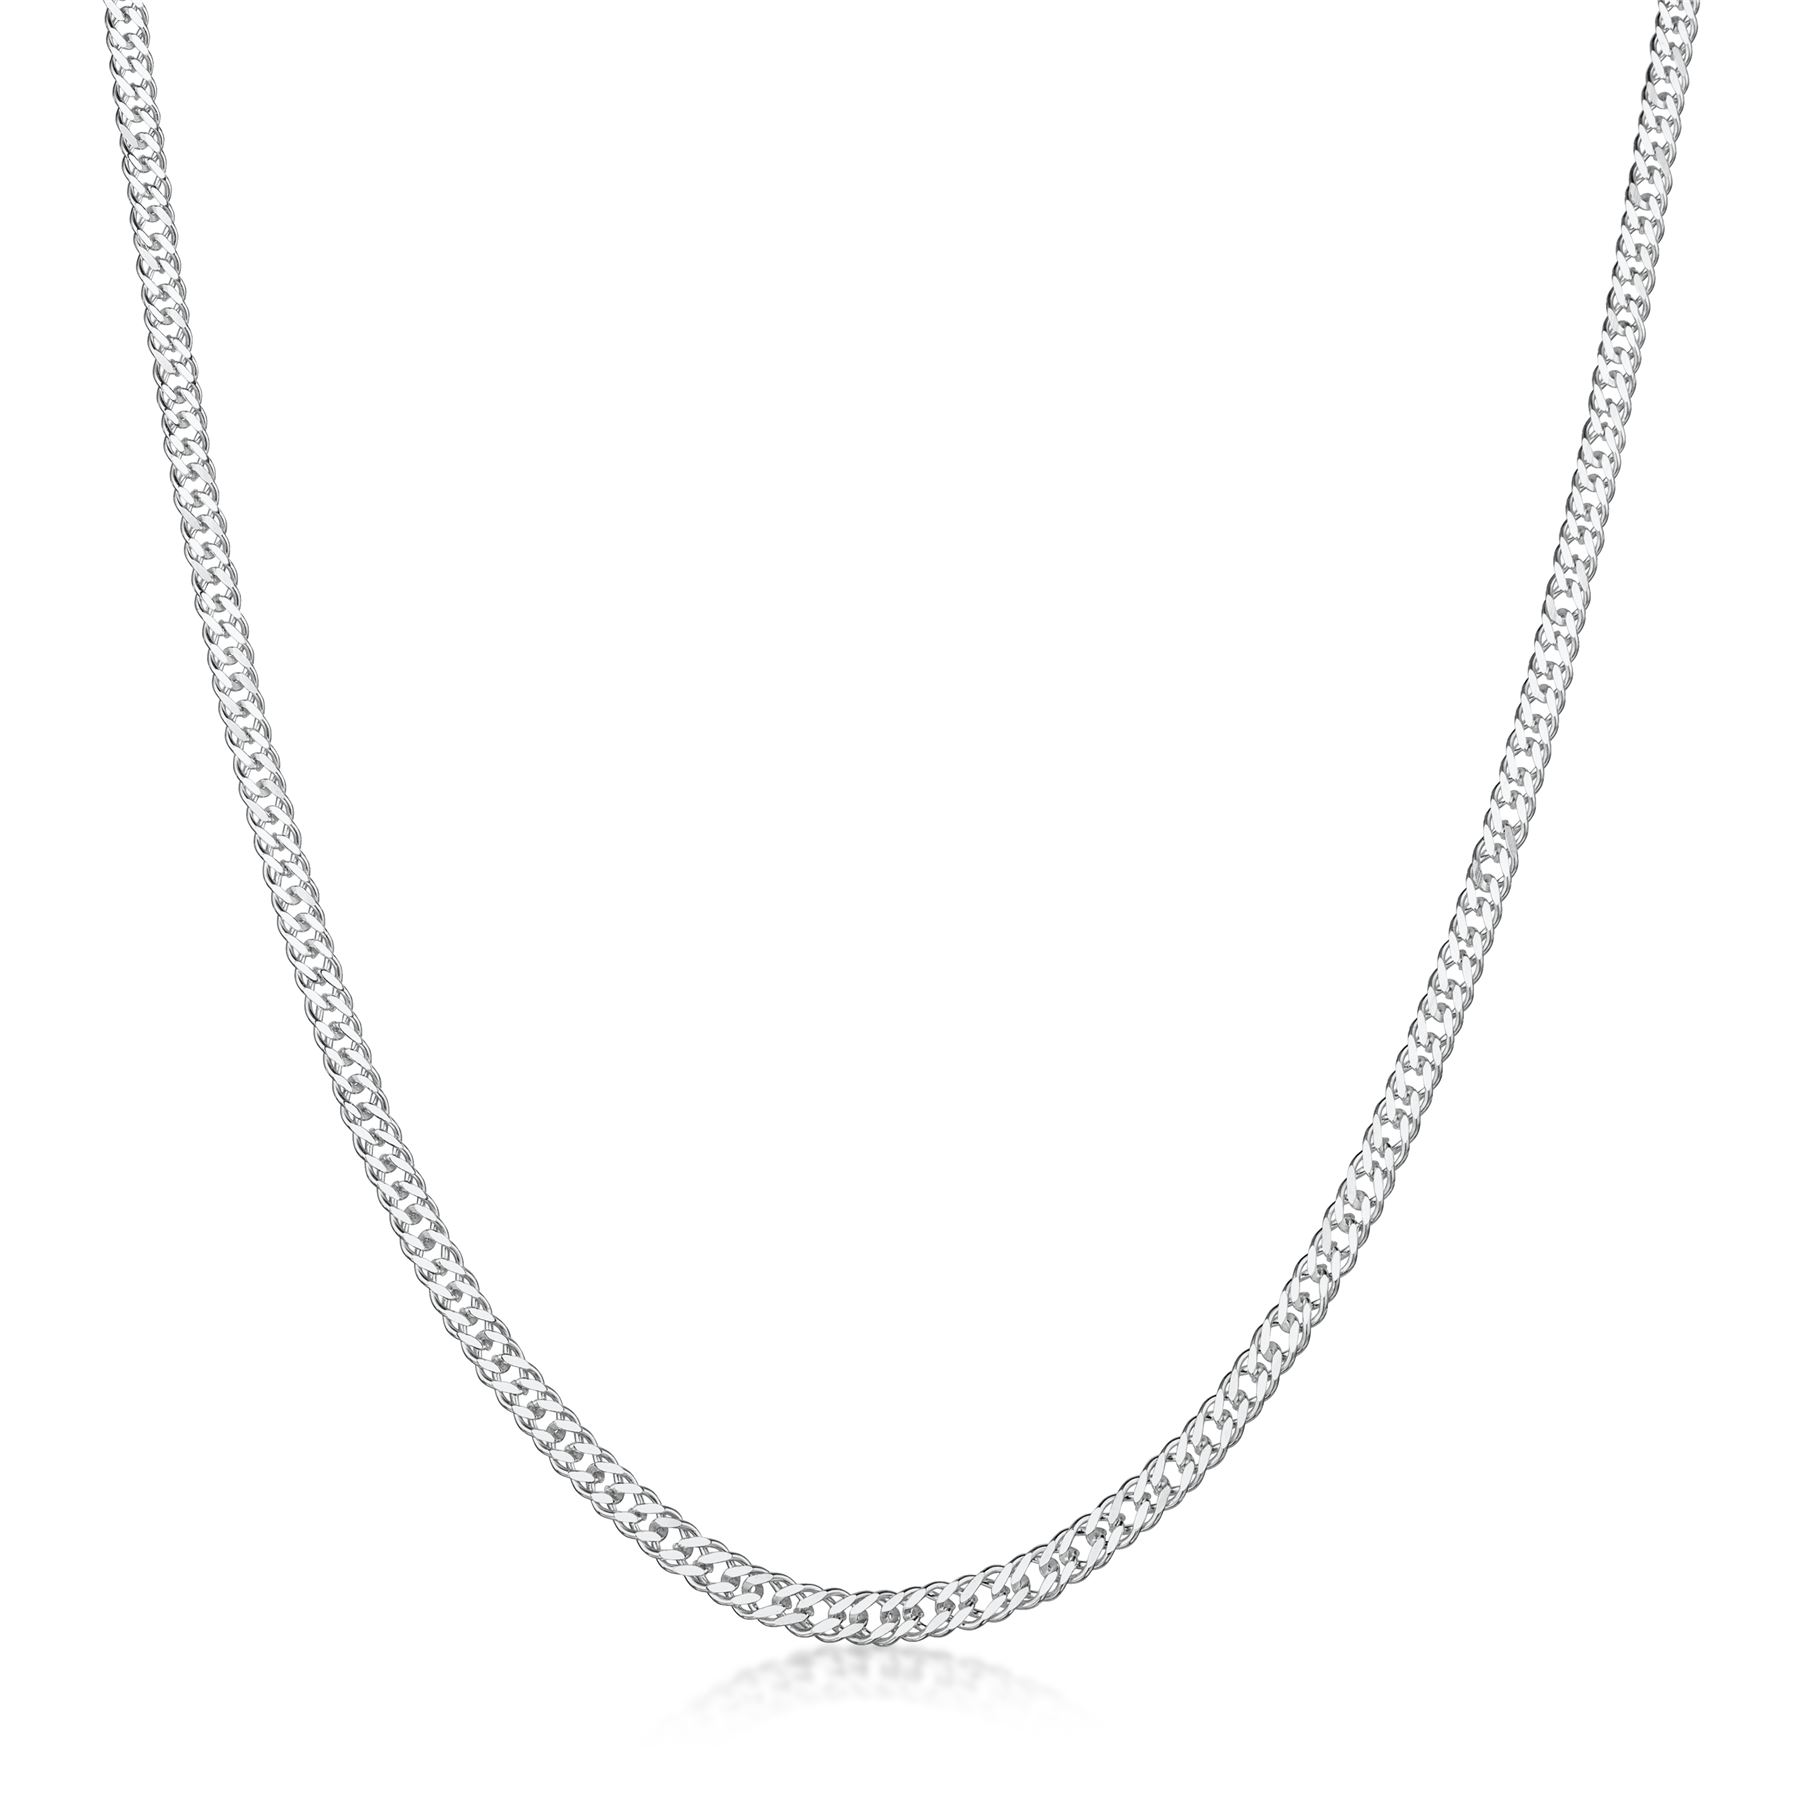 Amberta-Genuine-Real-925-Sterling-Silver-Long-Curb-Necklace-Chain-Made-in-Italy thumbnail 15